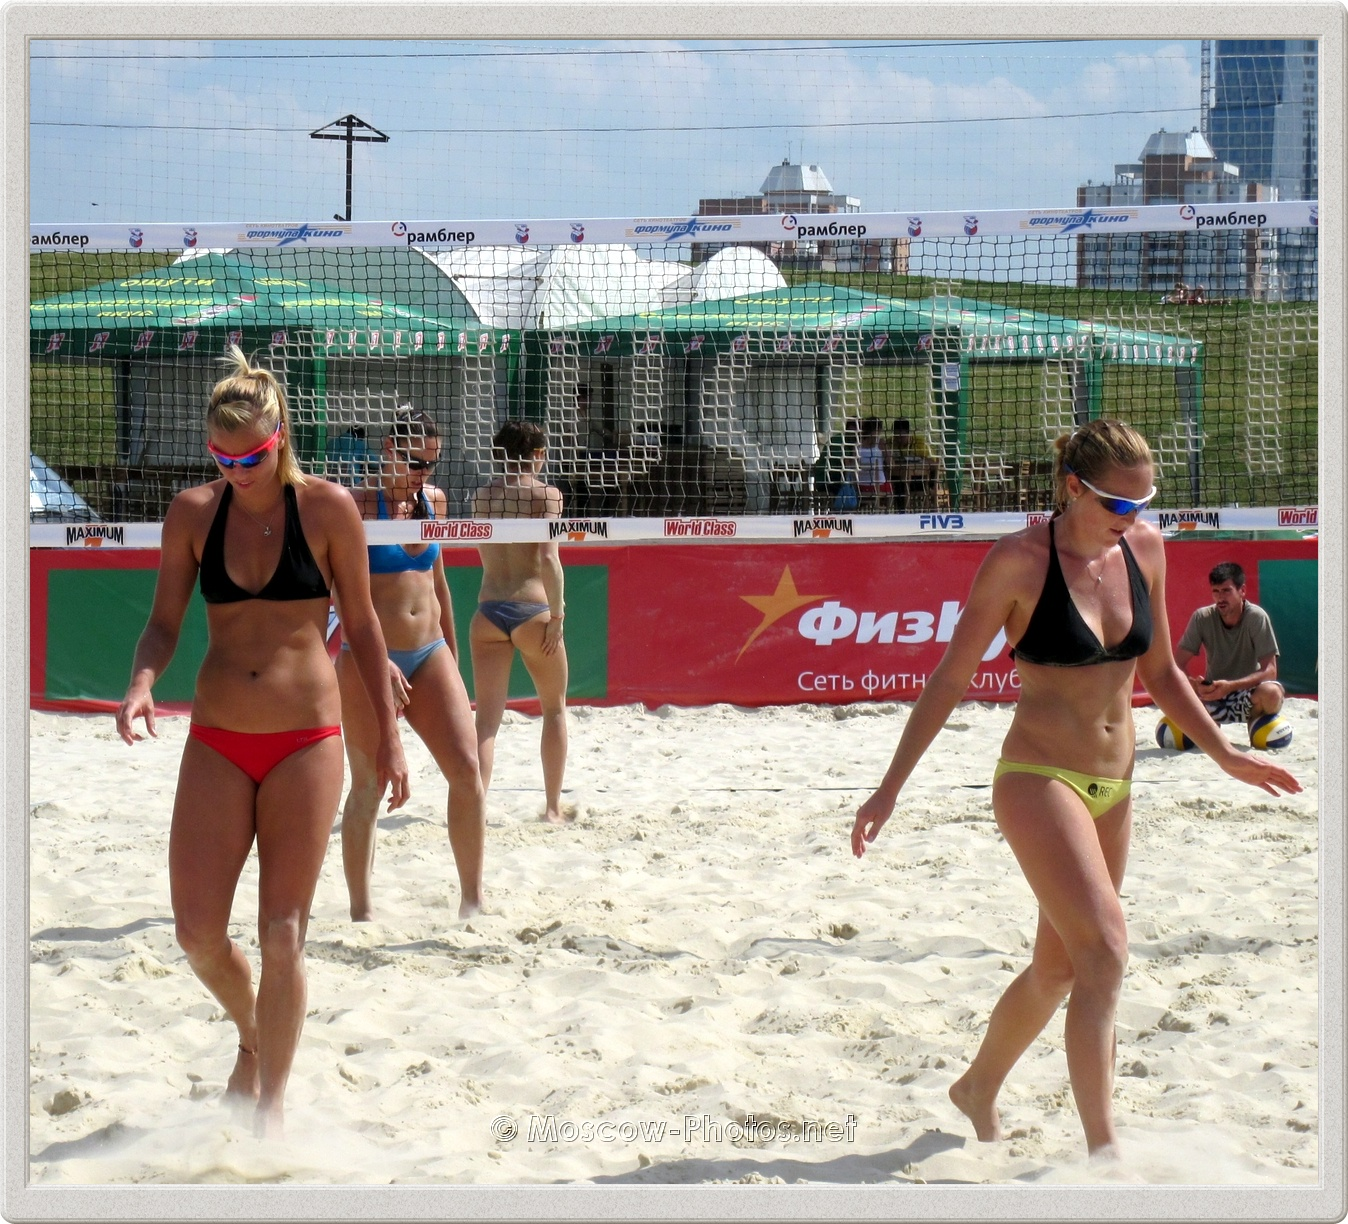 Marketa Slukova & Kristyna Kolocova at Beach Volleyball Tour